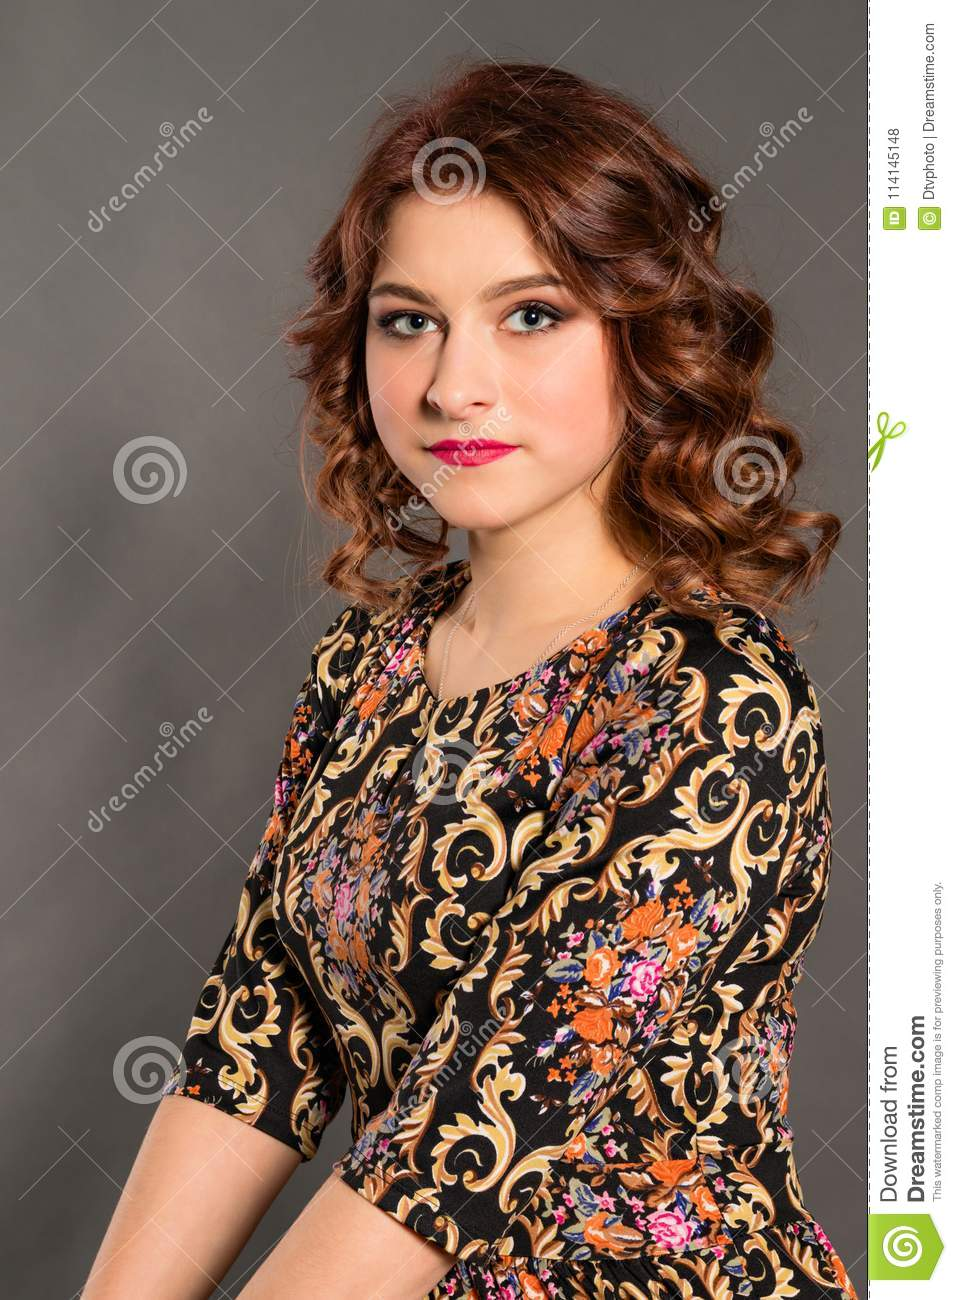 Portrait of an attractive girl on a neutral background